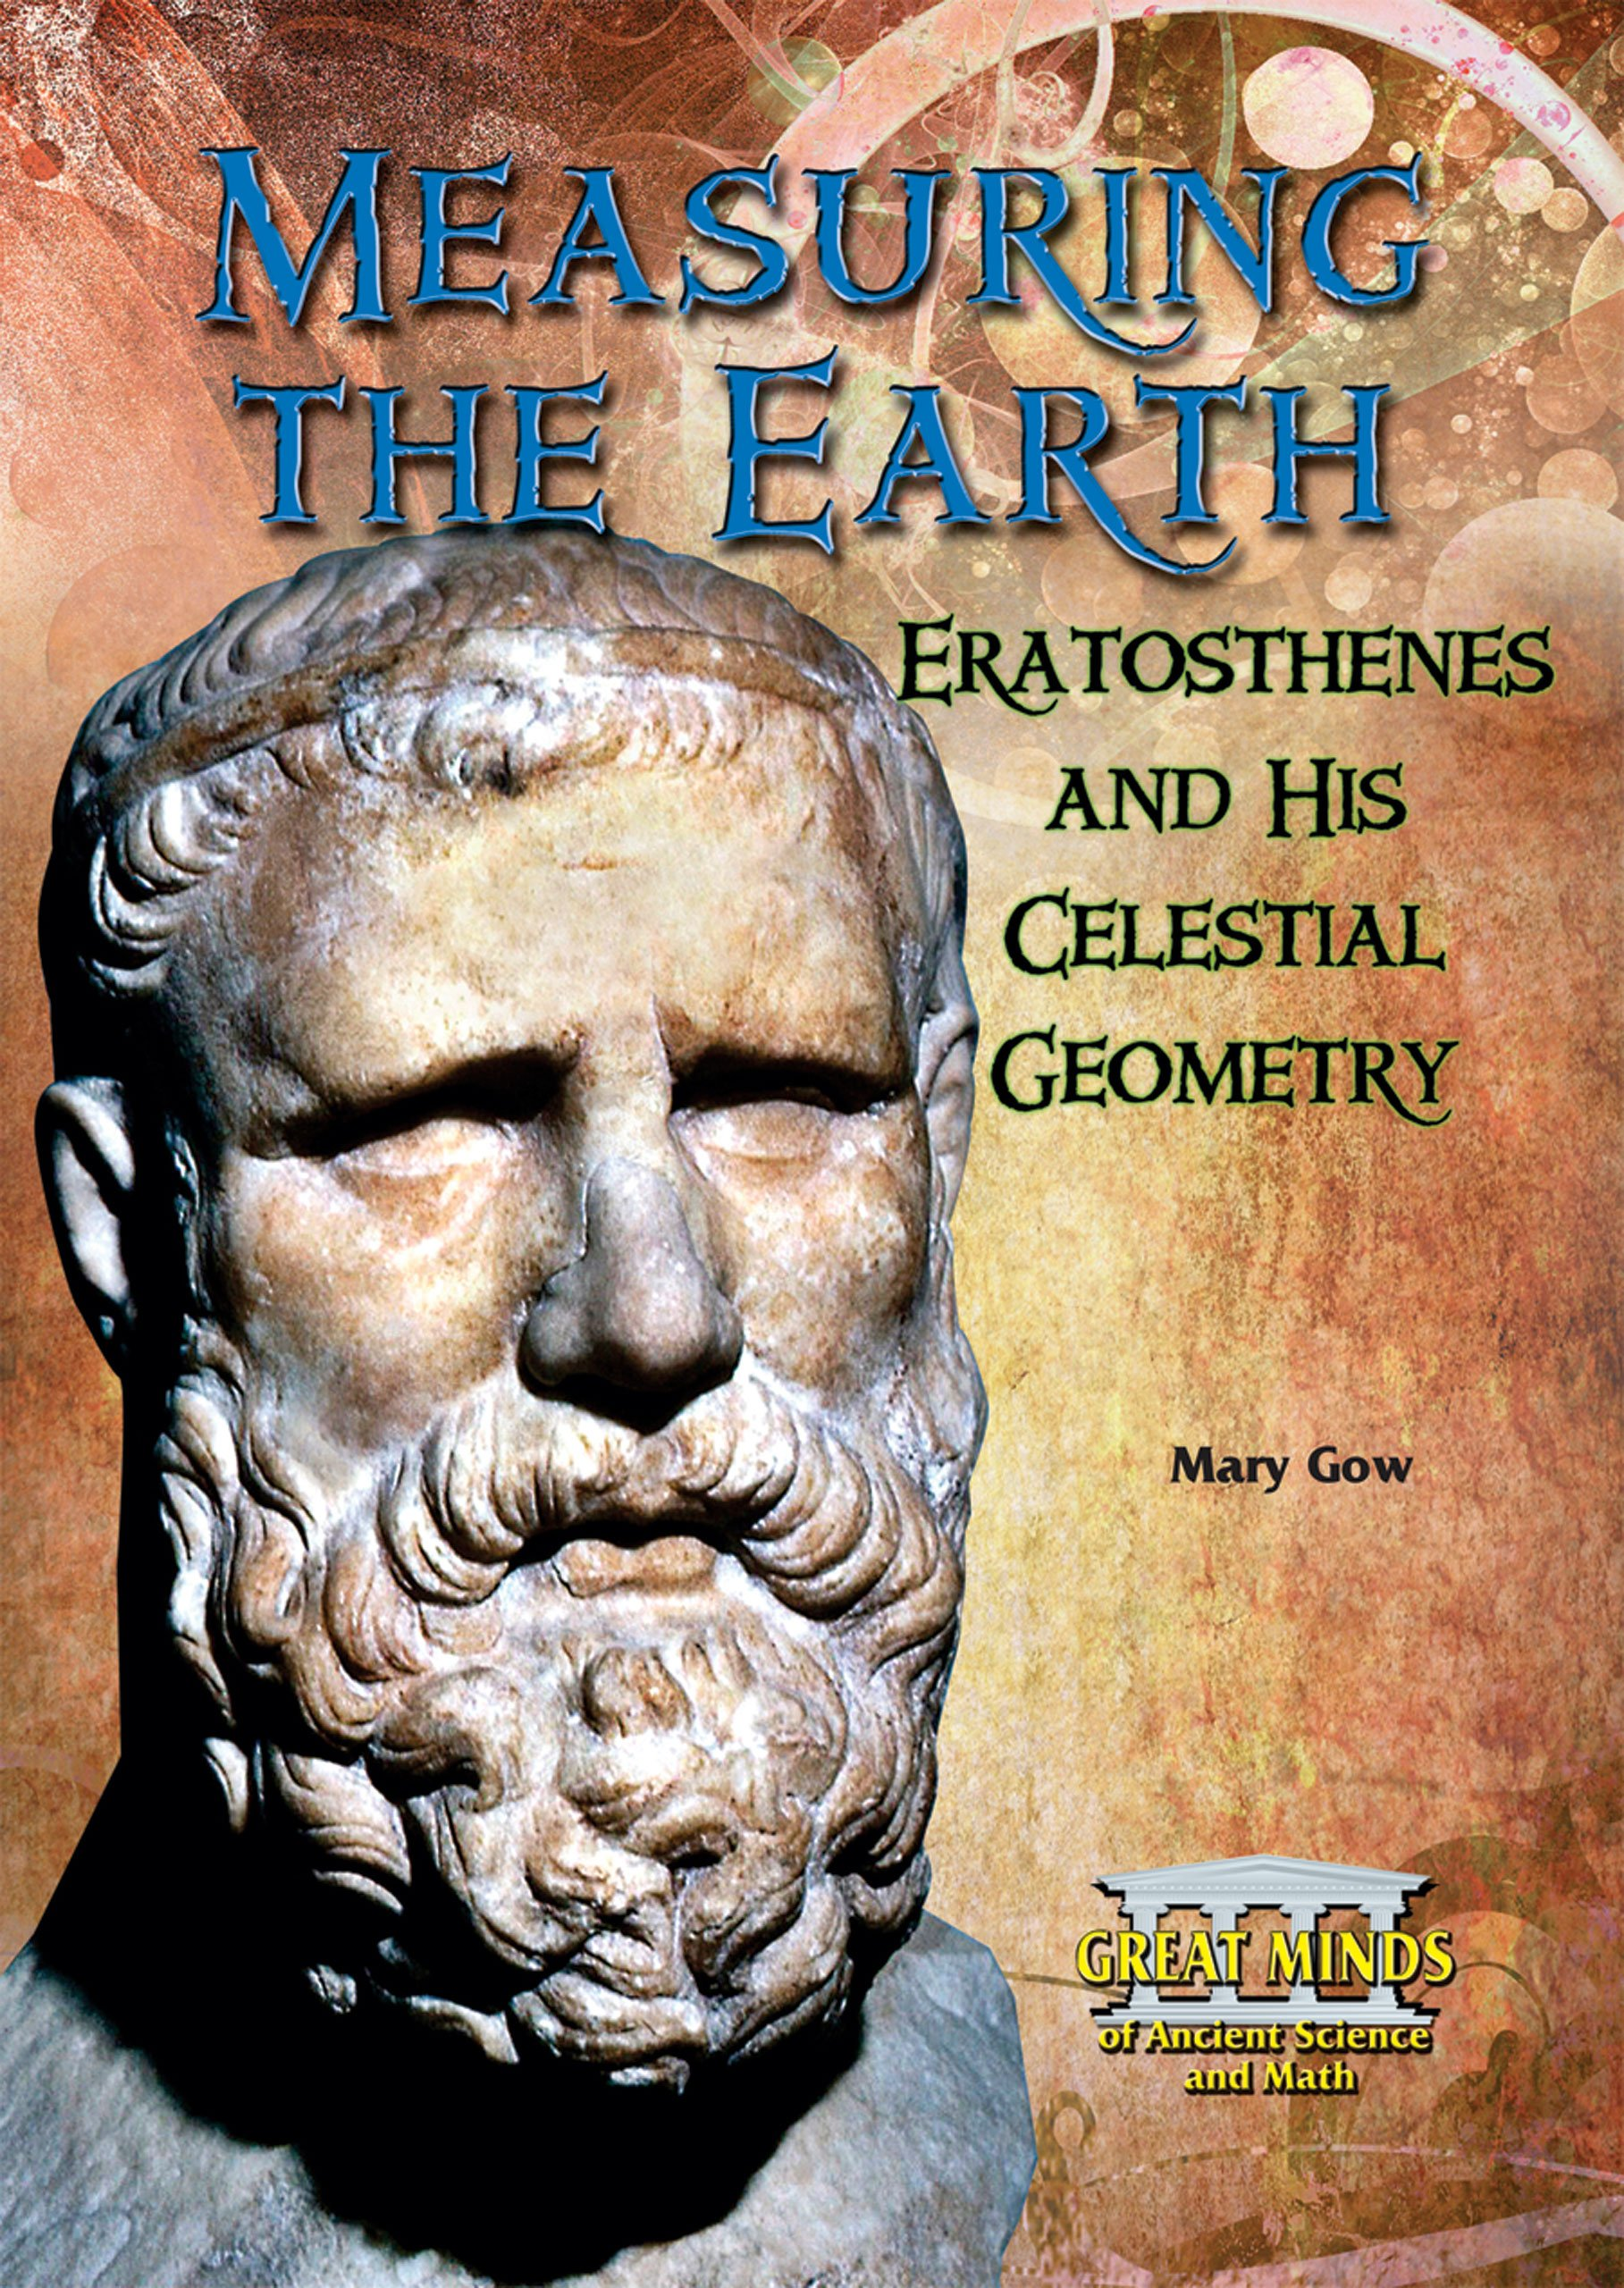 Read Online Measuring the Earth: Eratosthenes and His Celestial Geometry (Great Minds of Ancient Science and Math) ebook